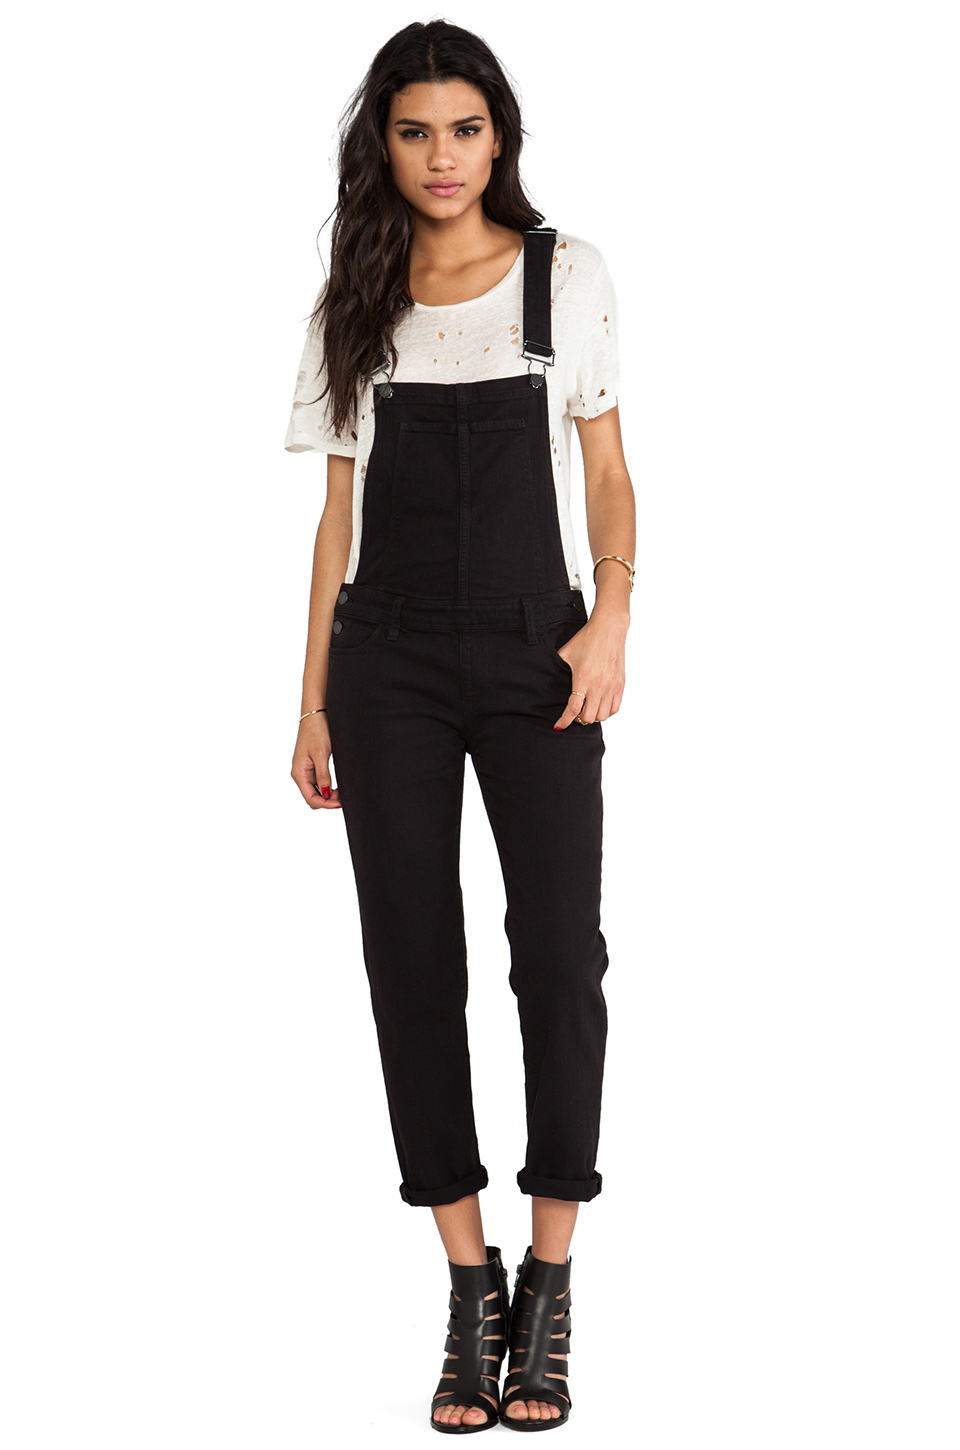 Paige Denim Sierra Overall in Vintage Black from REVOLVEclothing.com